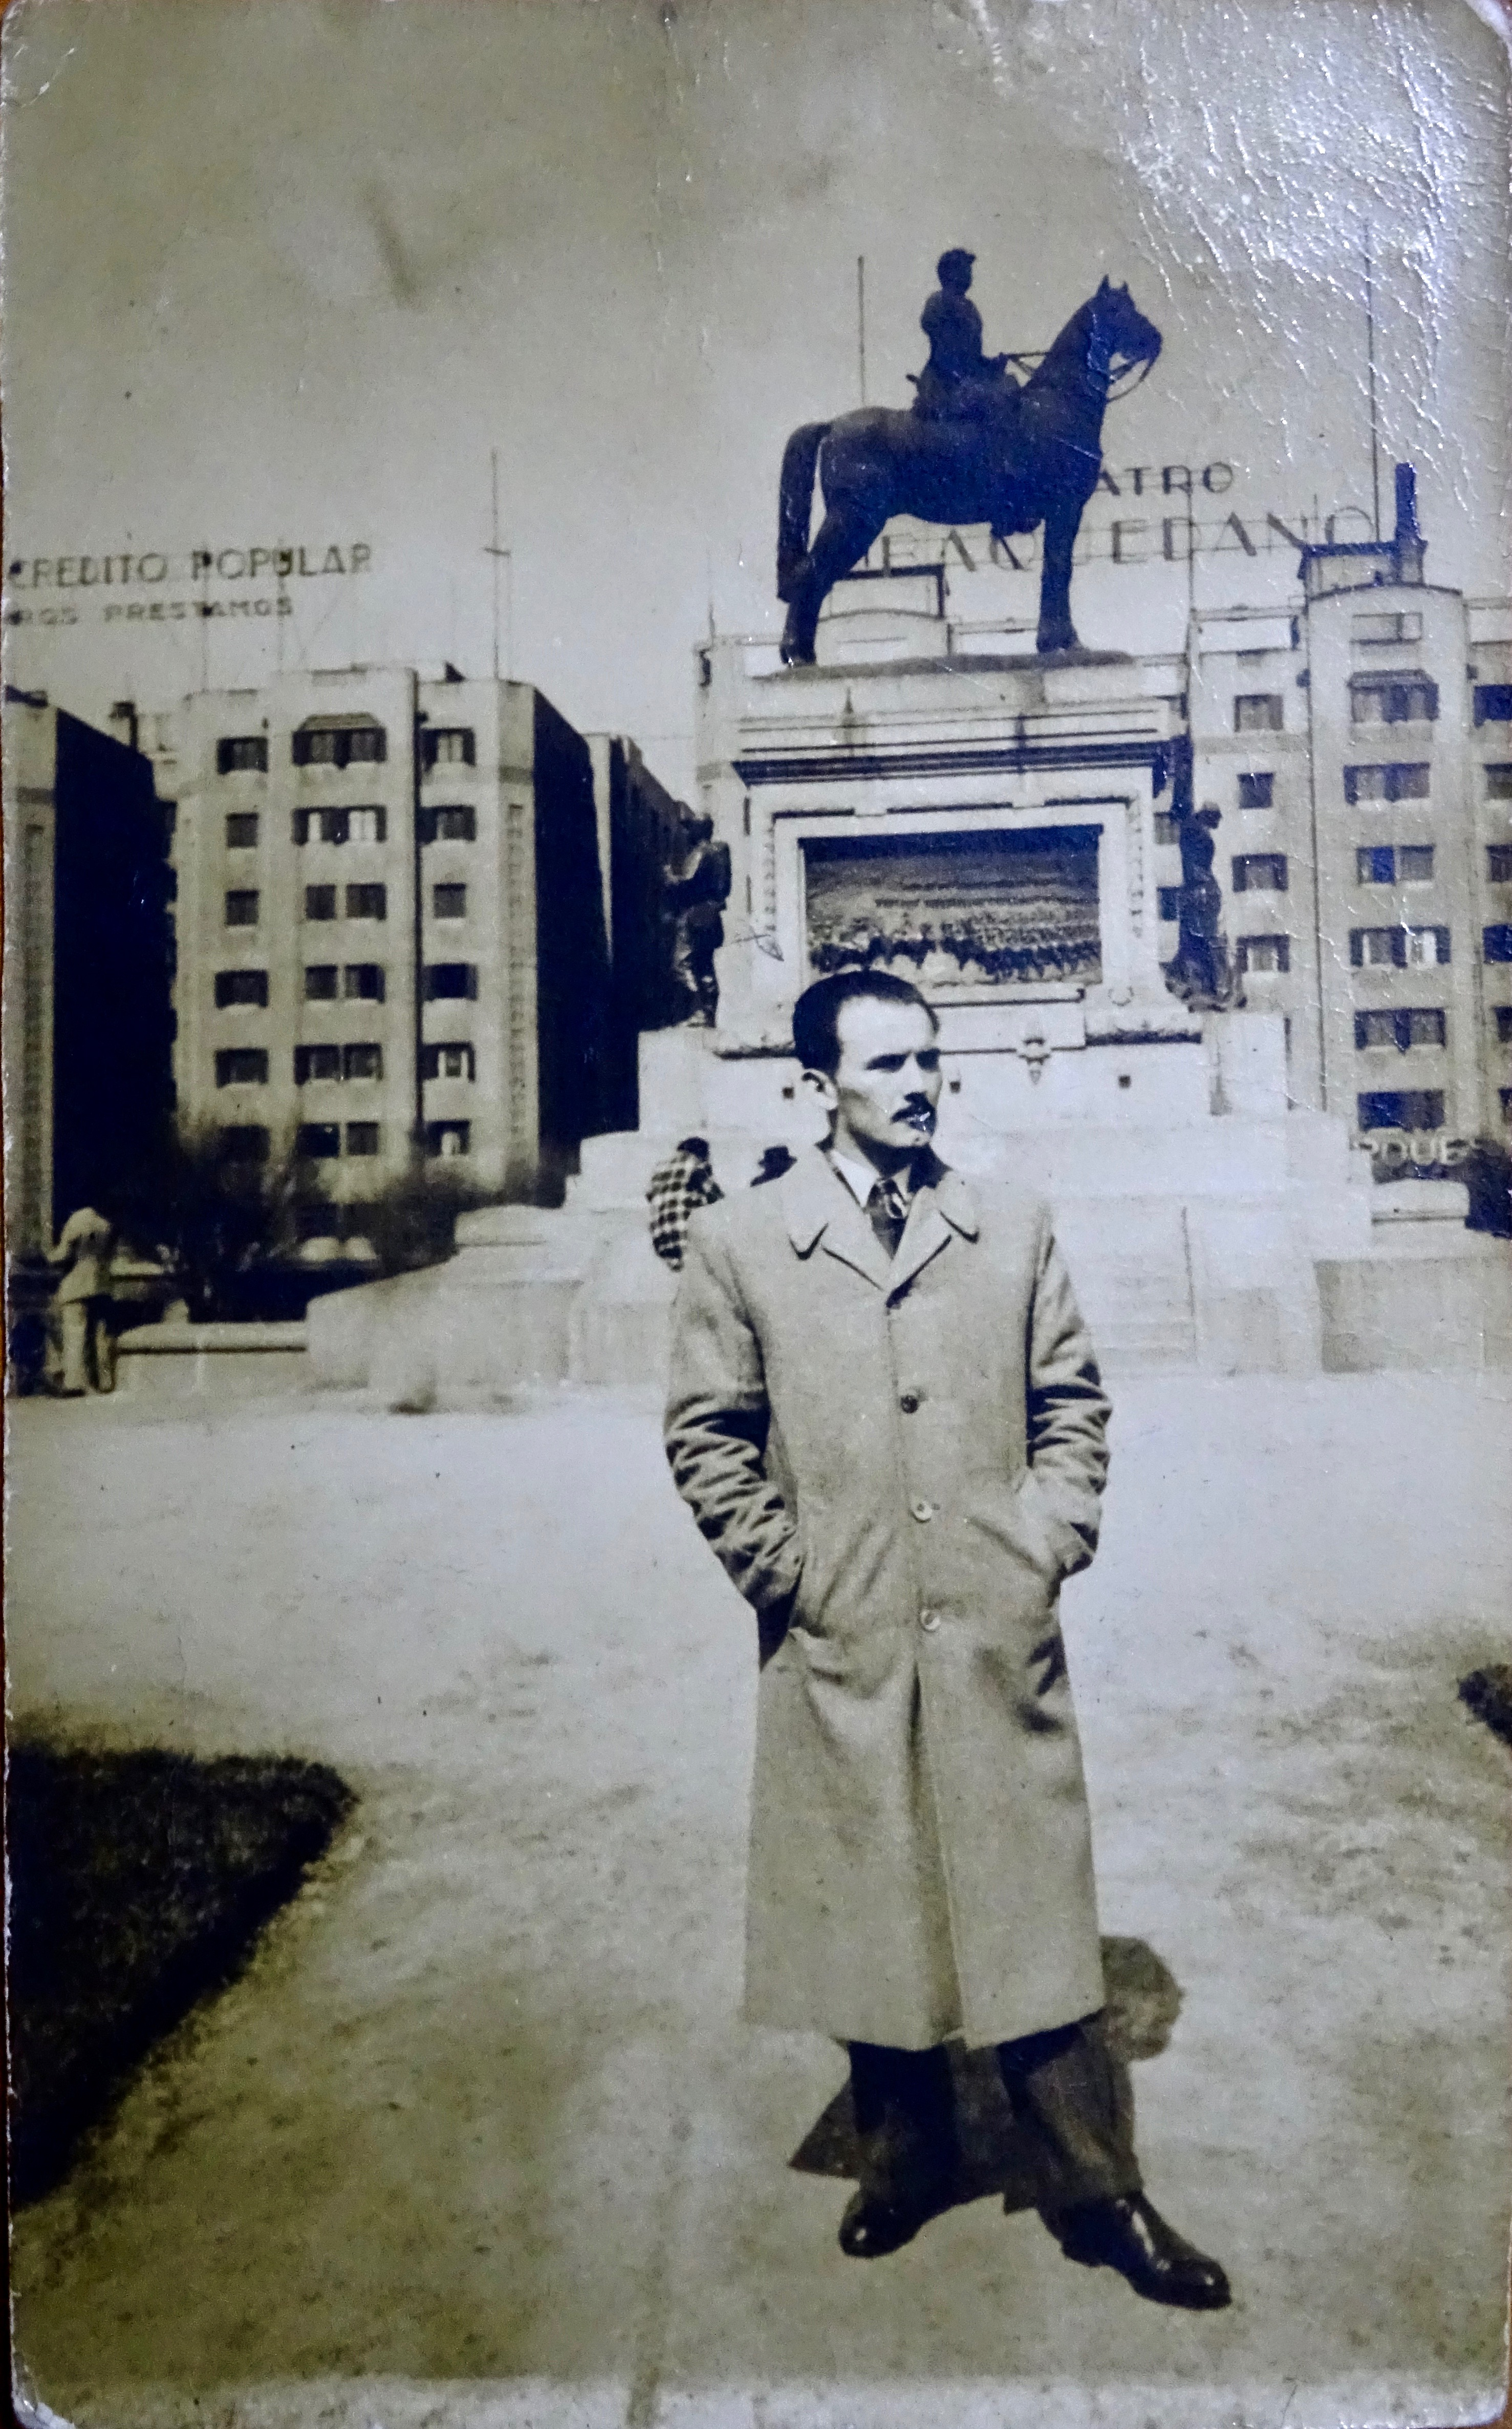 Enterreno - Fotos históricas de chile - fotos antiguas de Chile - Plaza Baquedano en 1947